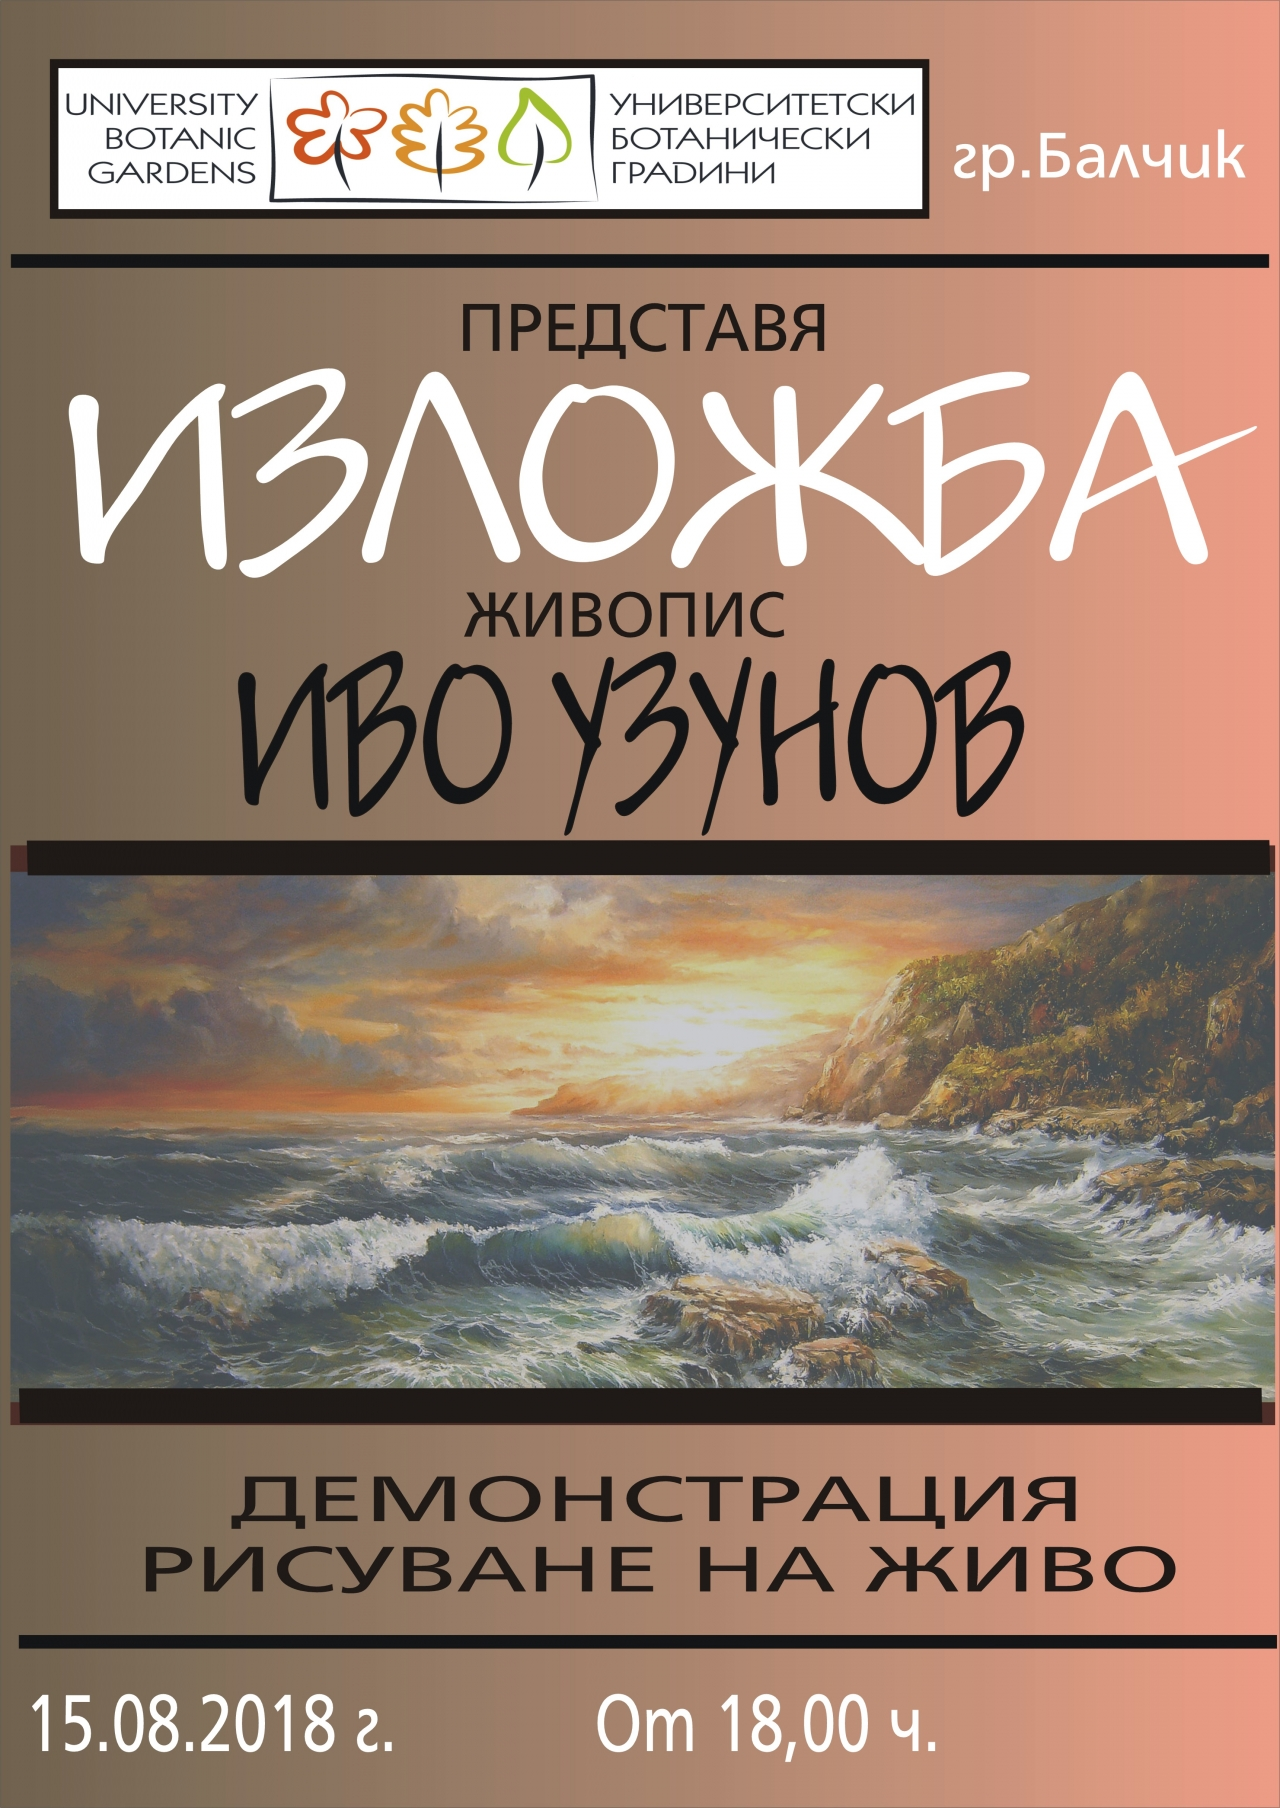 EXHIBITION OF IVO UZUNOV'S PAINTING FROM 15 AUGUST